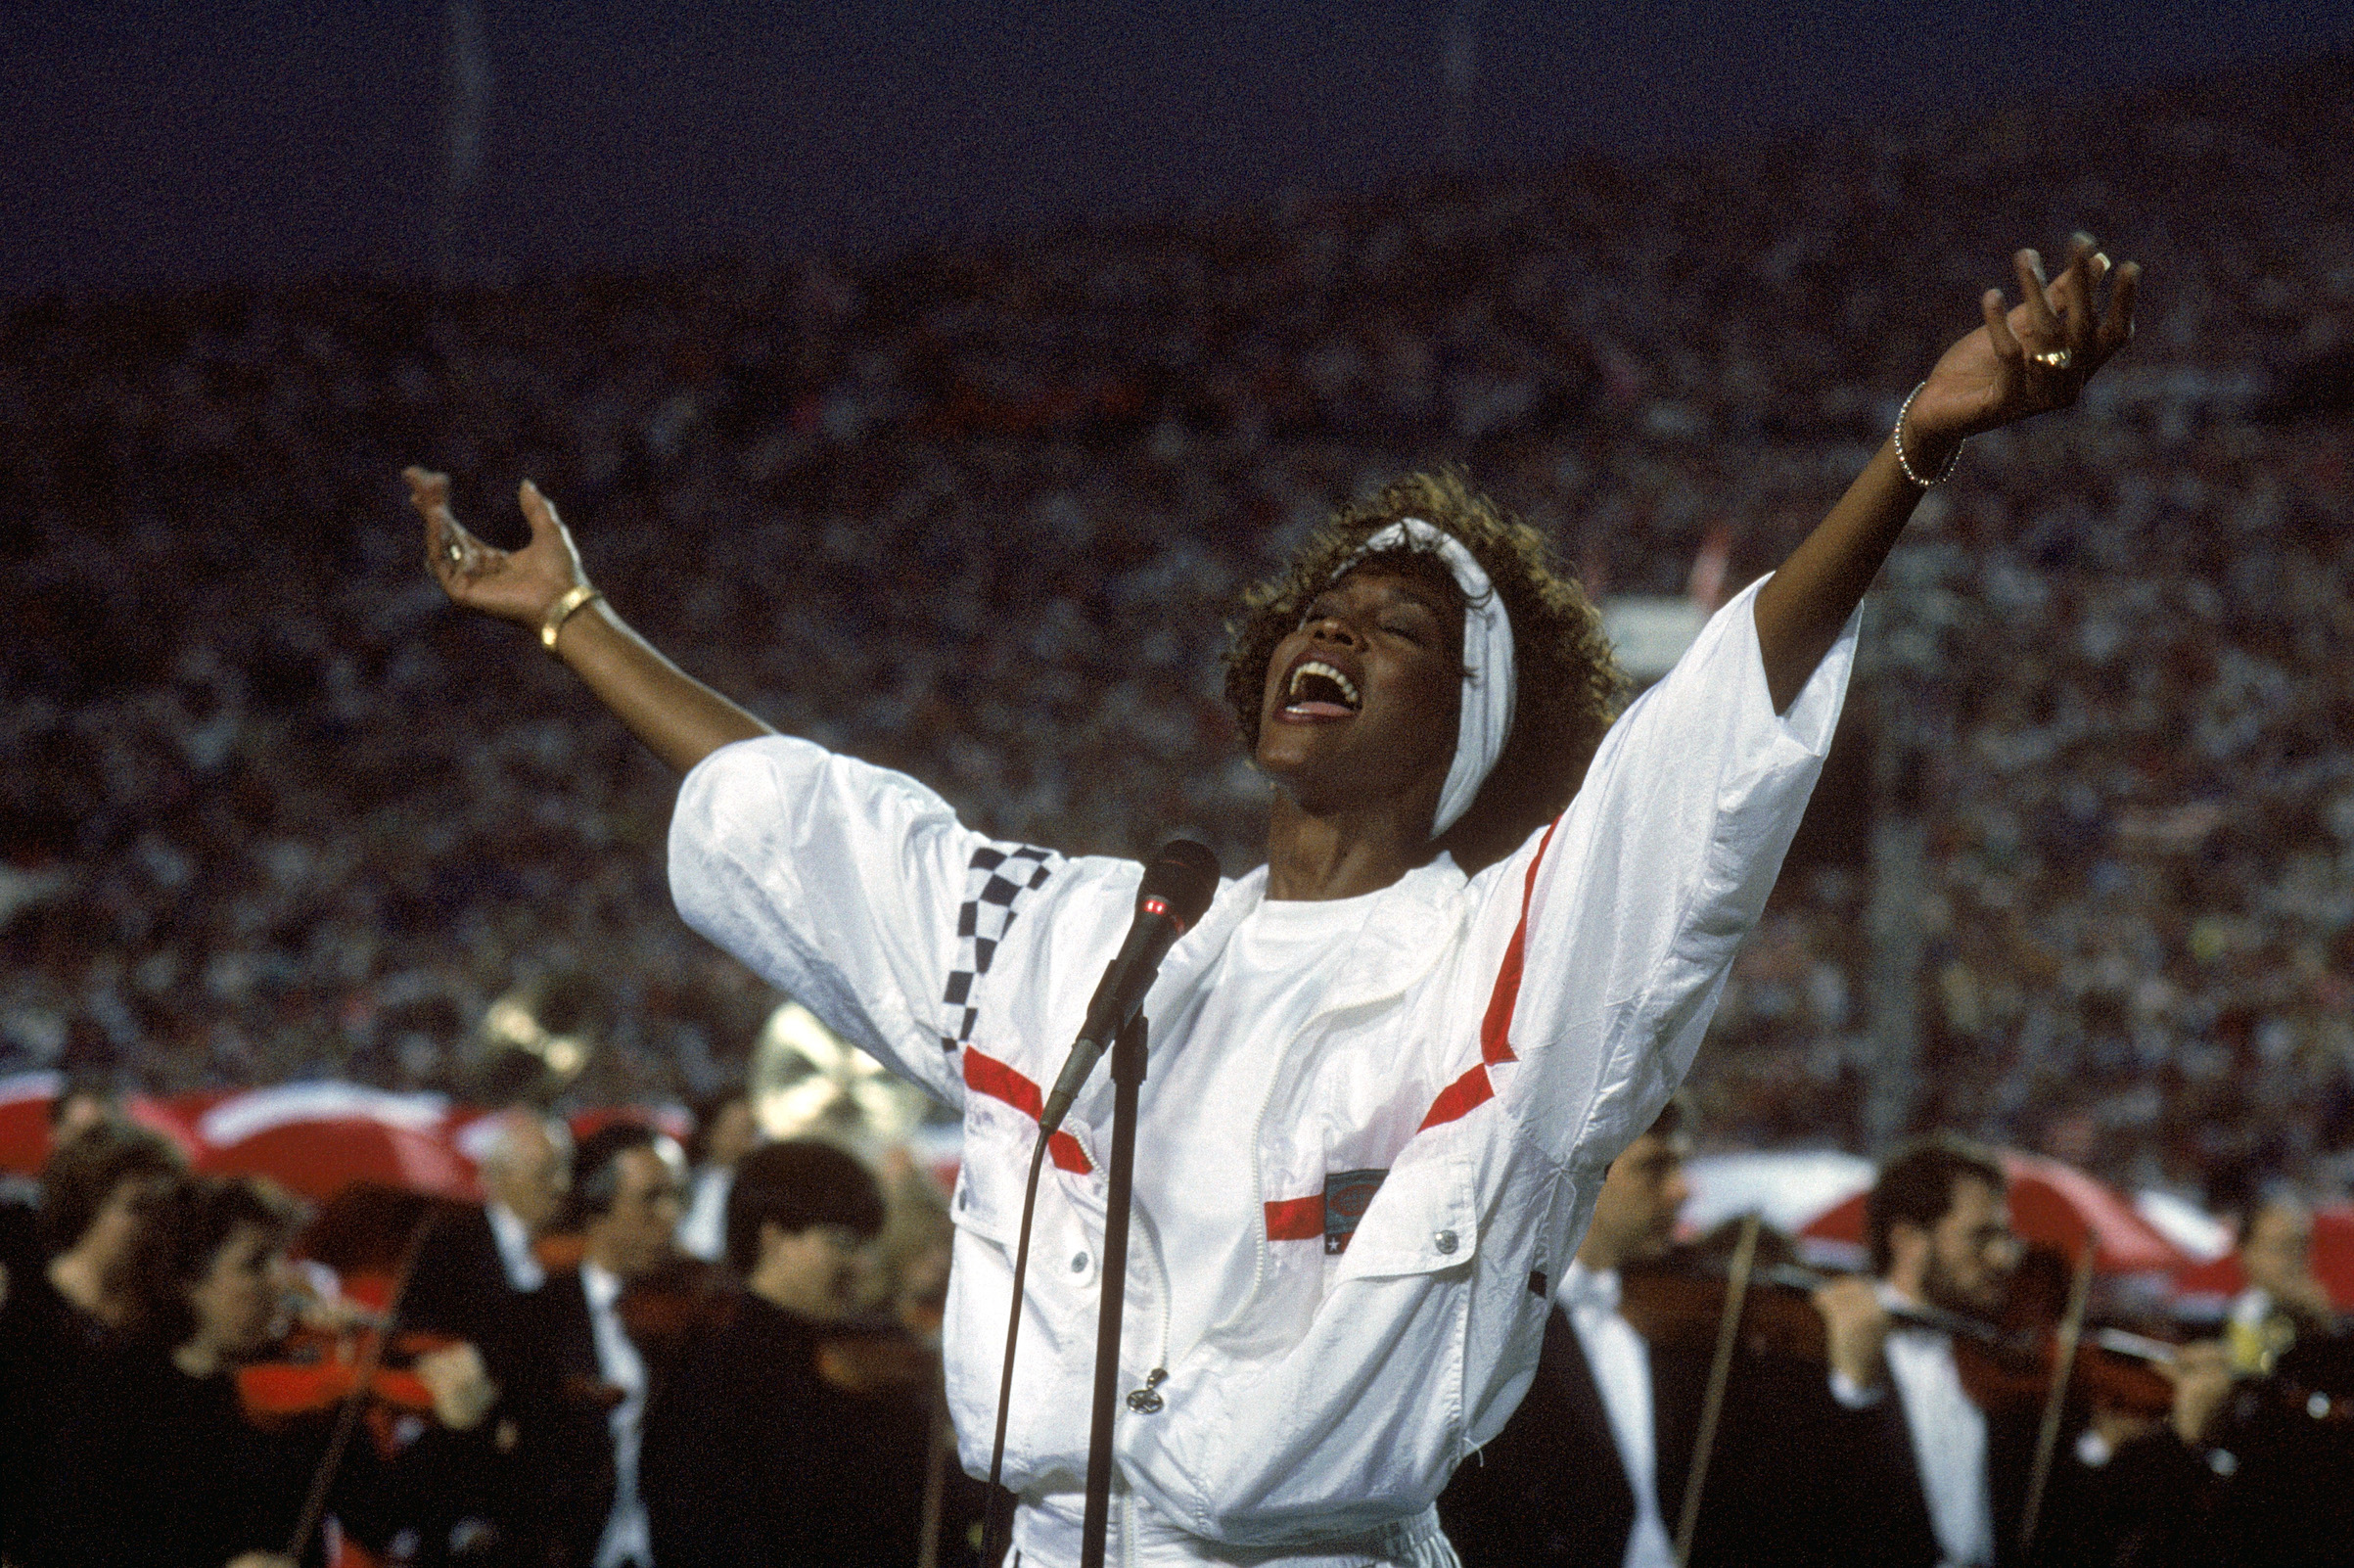 Whitney Houston sings the National Anthem before a game with the New York Giants taking on the Buffalo Bills prior to Super Bowl XXV at Tampa Stadium on Jan. 27, 1991 in Tampa, Fla.